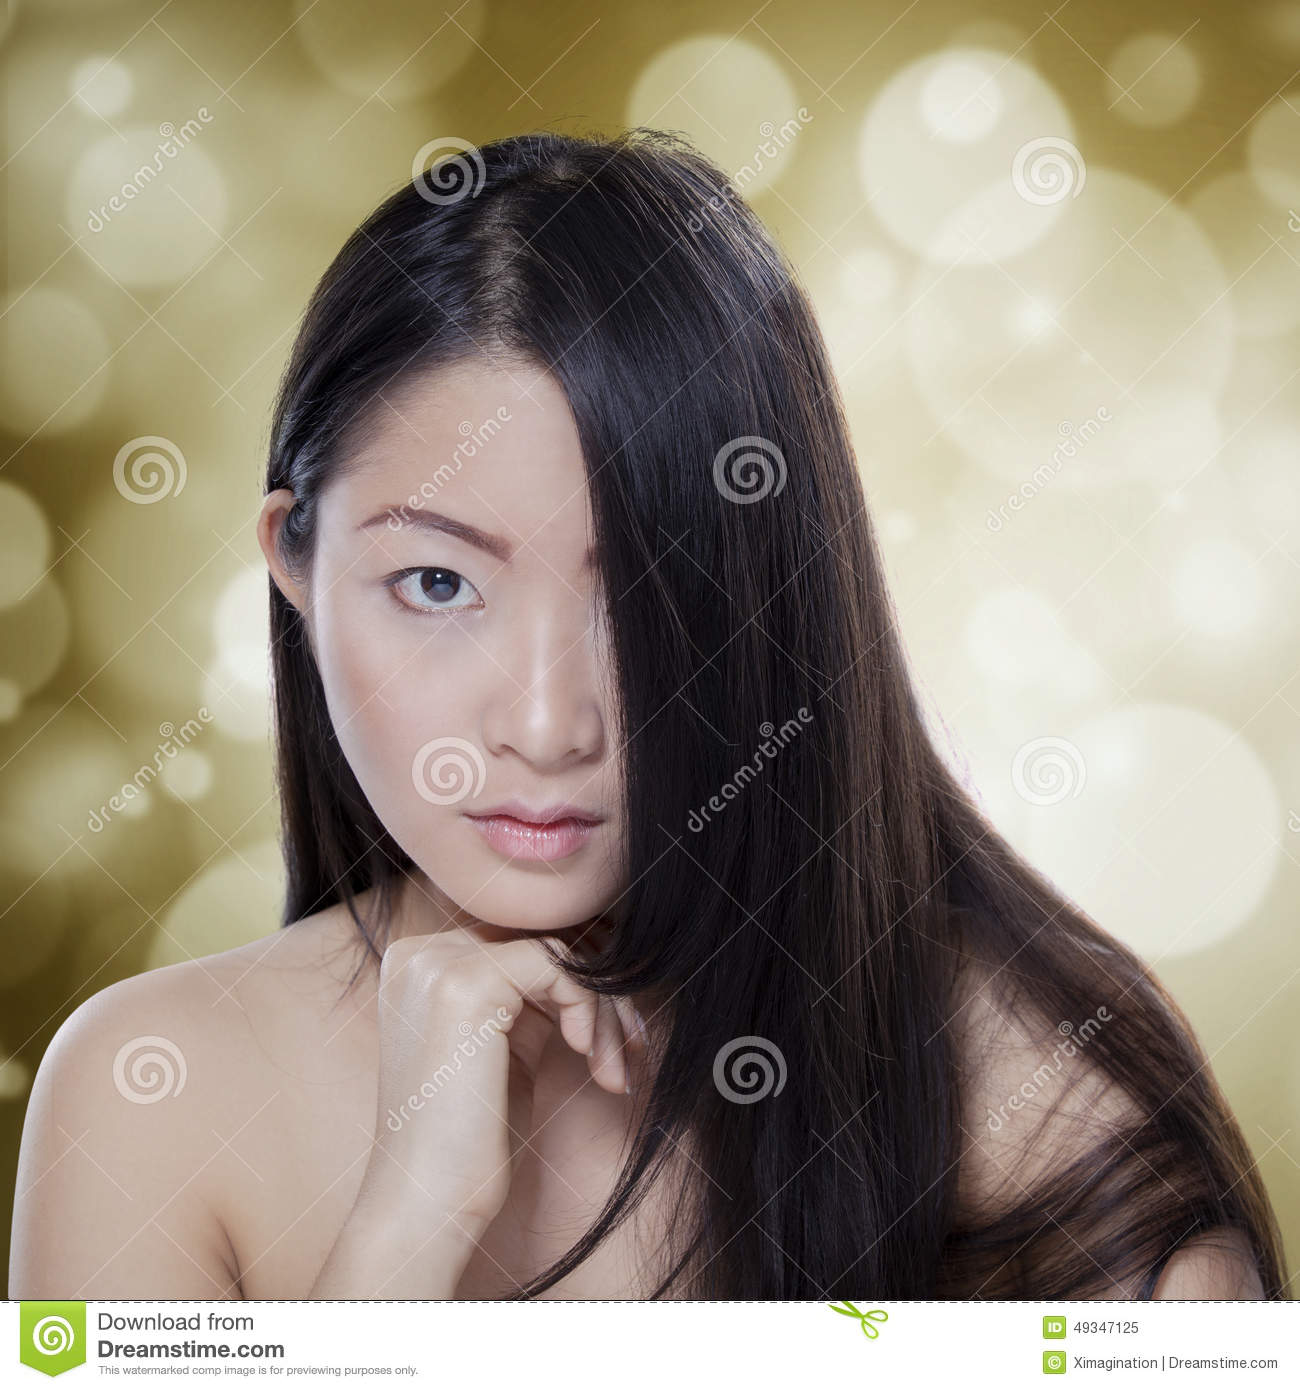 Girl With Black Hair And Healthy Skin Stock Photo - Image ...